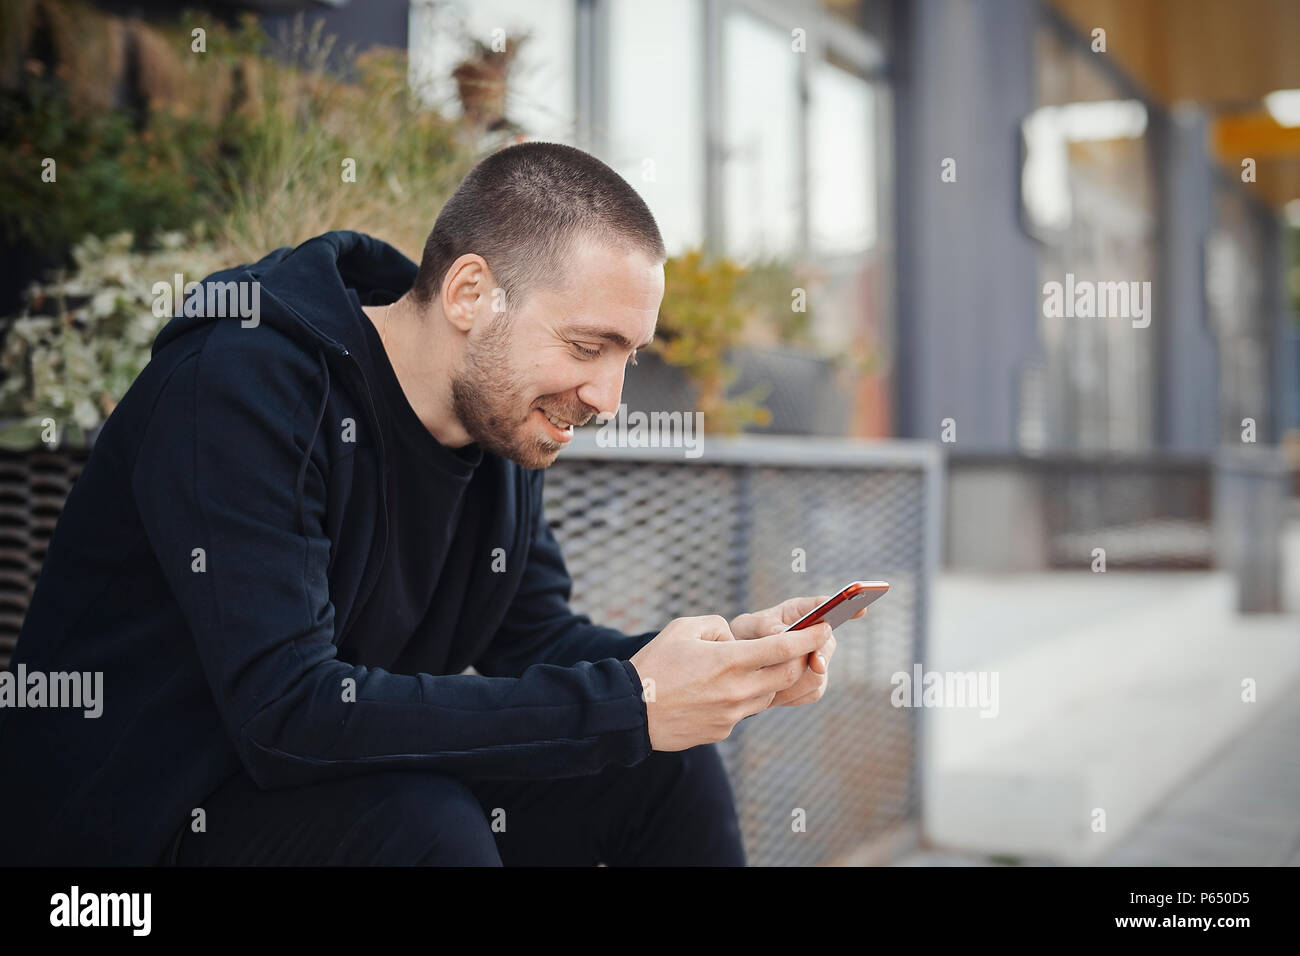 Bearded man looking at mobile phone screen and smiling. - Stock Image